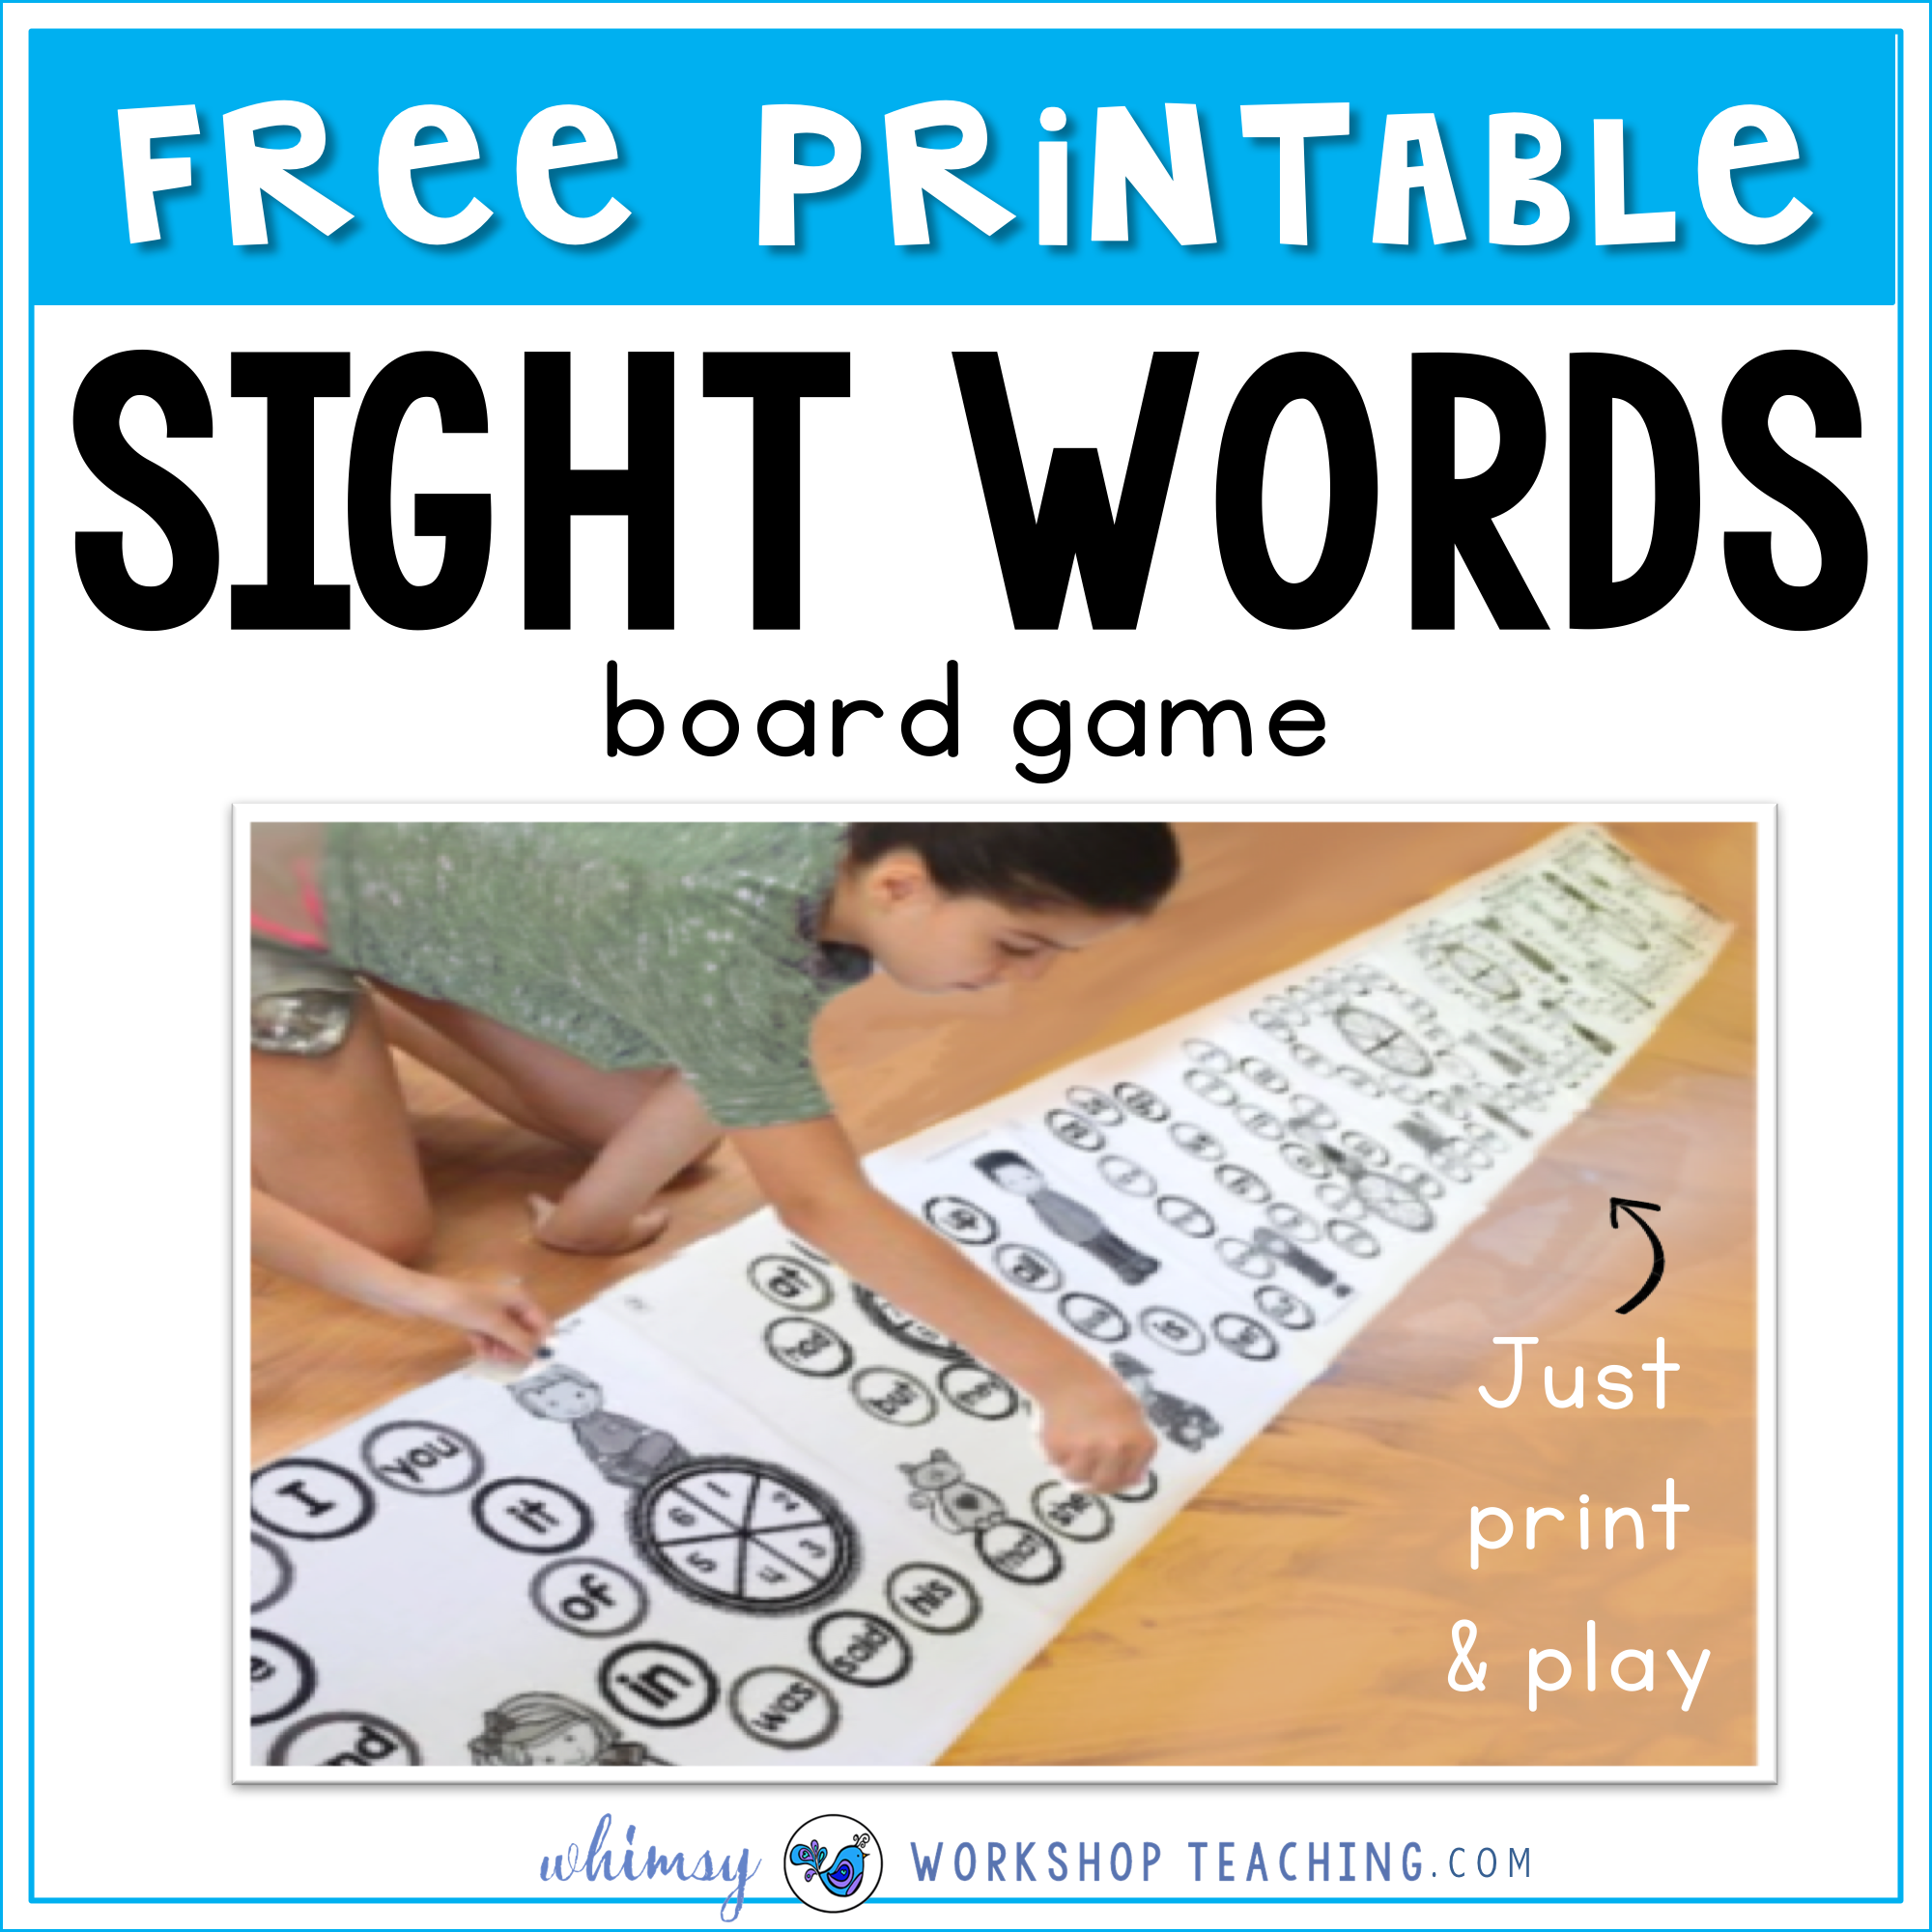 Giant Sight Word Board game to print and play FREE